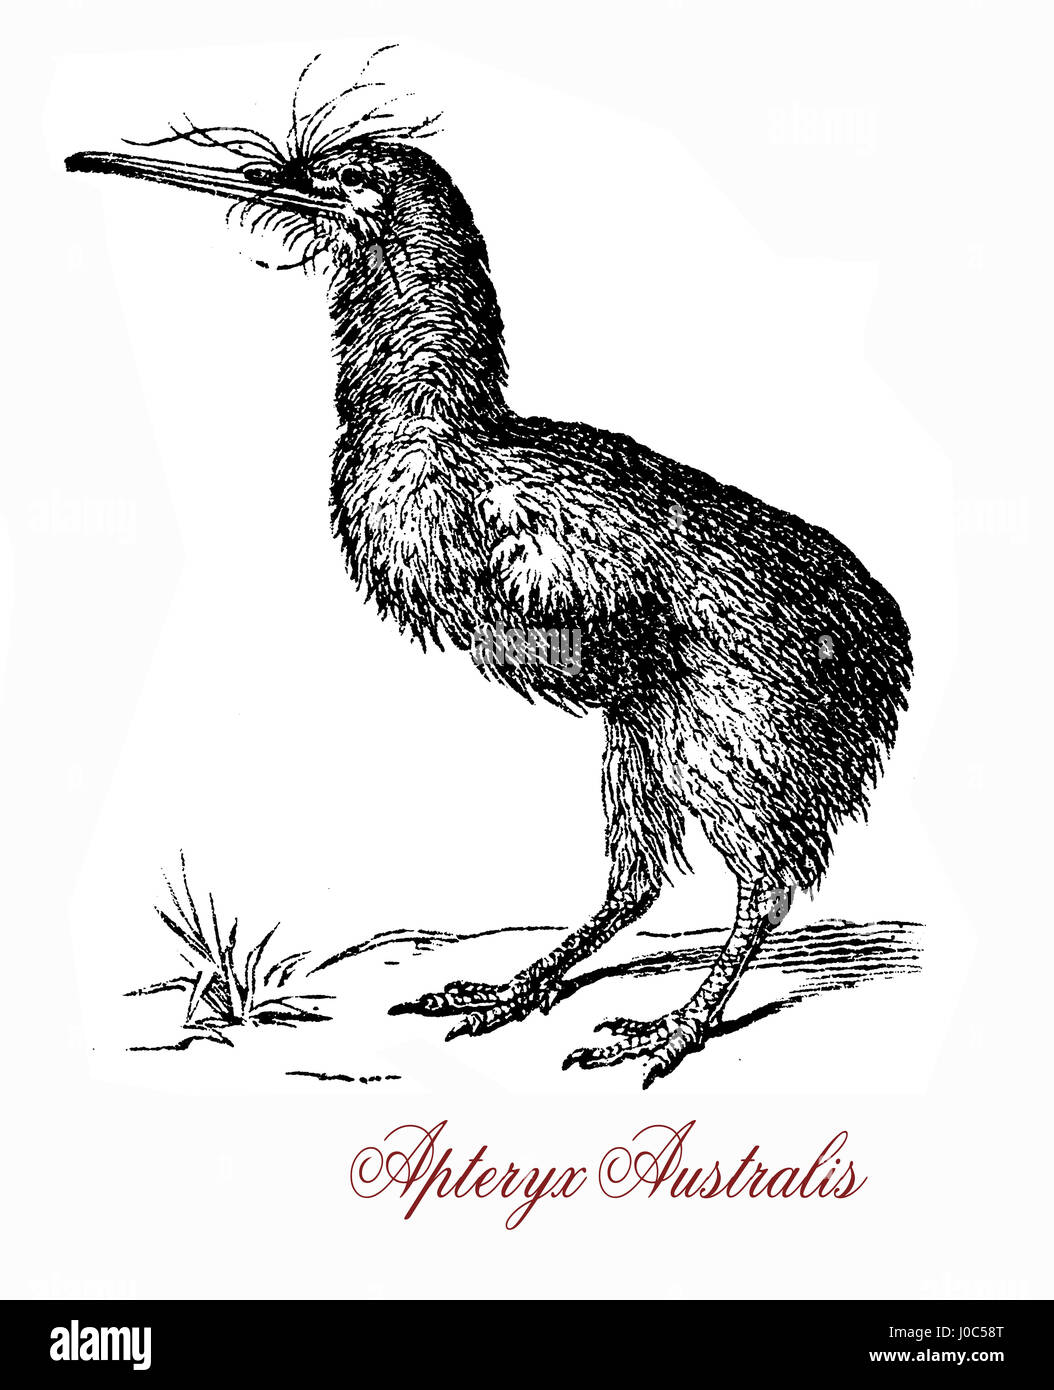 Brown Kiwi Apteryx Australis Stock Photos & Brown Kiwi Apteryx ...